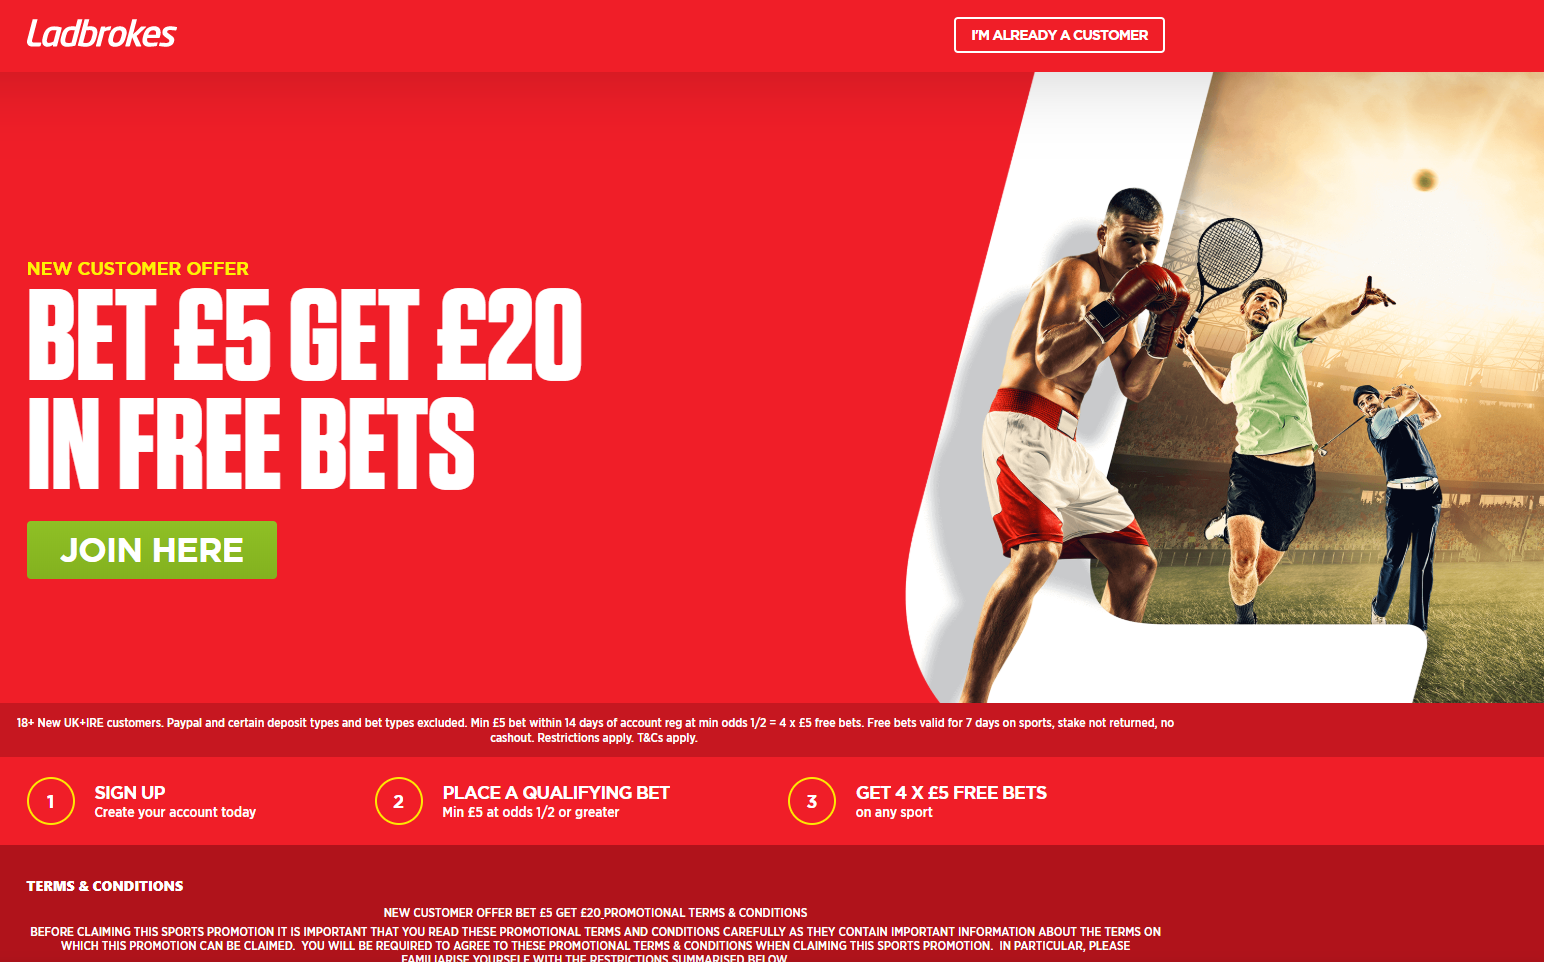 ladbrokes-offer-landing-page